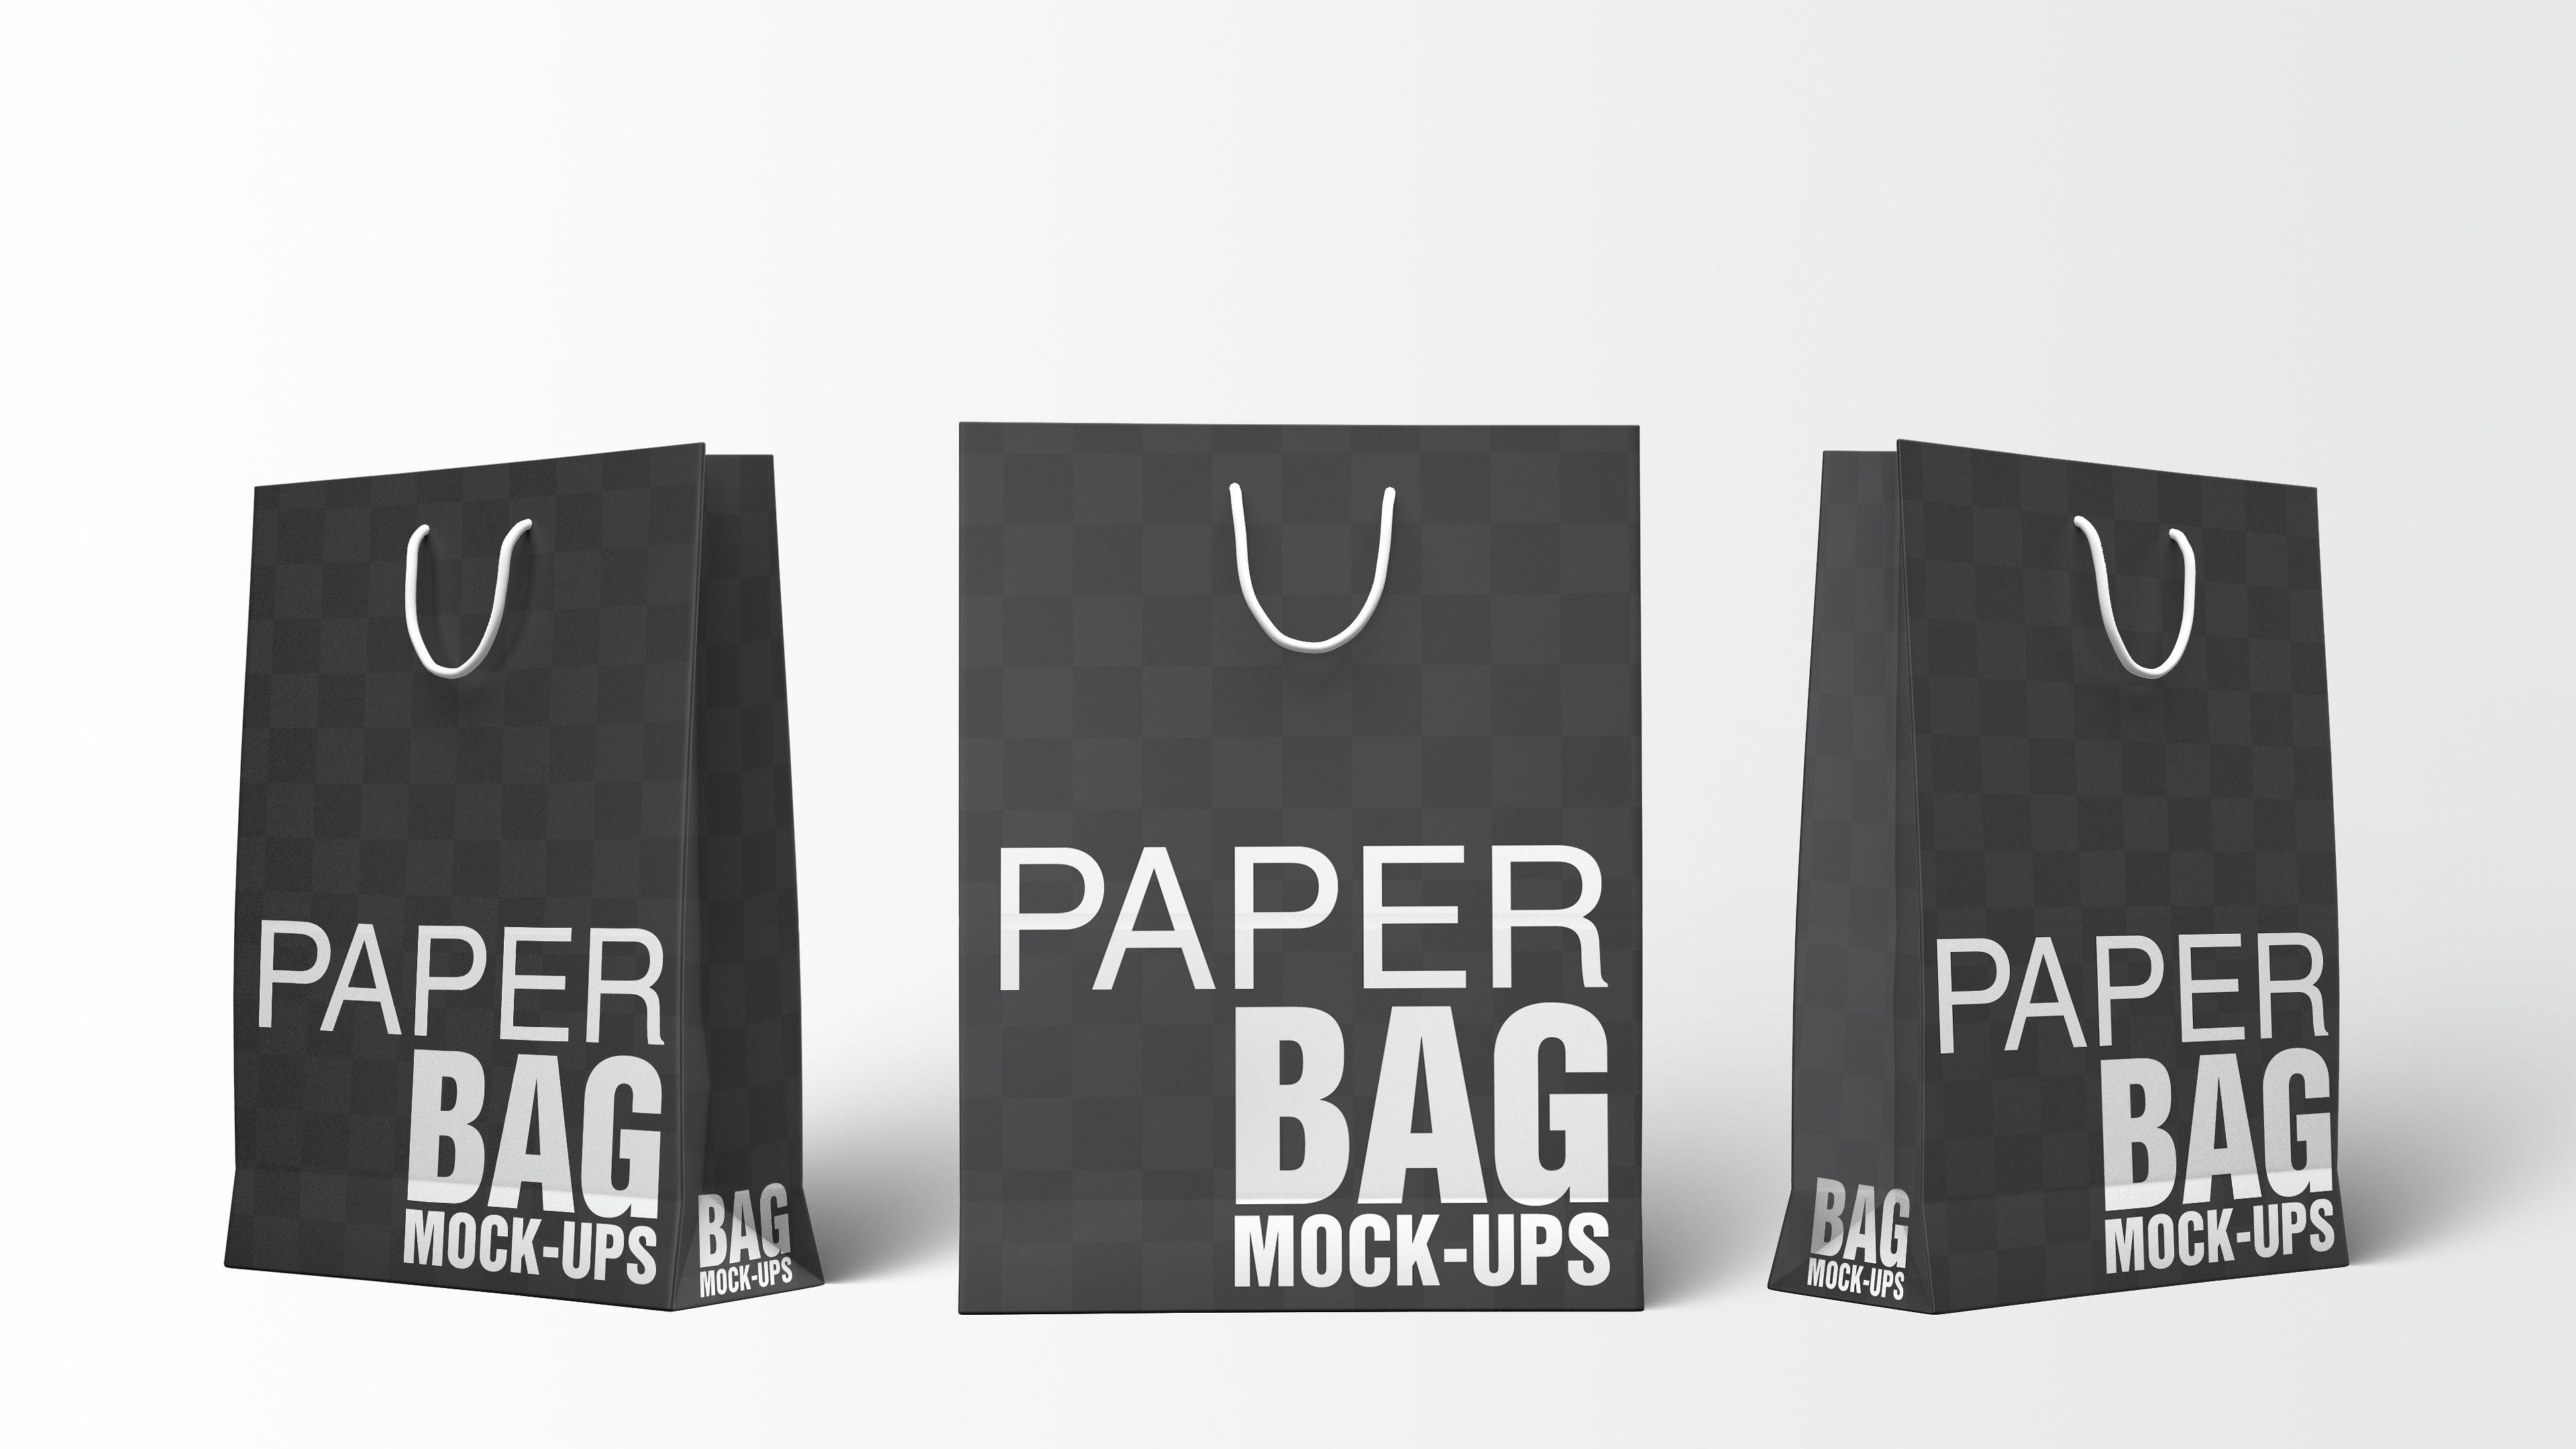 4273+ Paper Bag White Mockup Packaging Mockups PSD